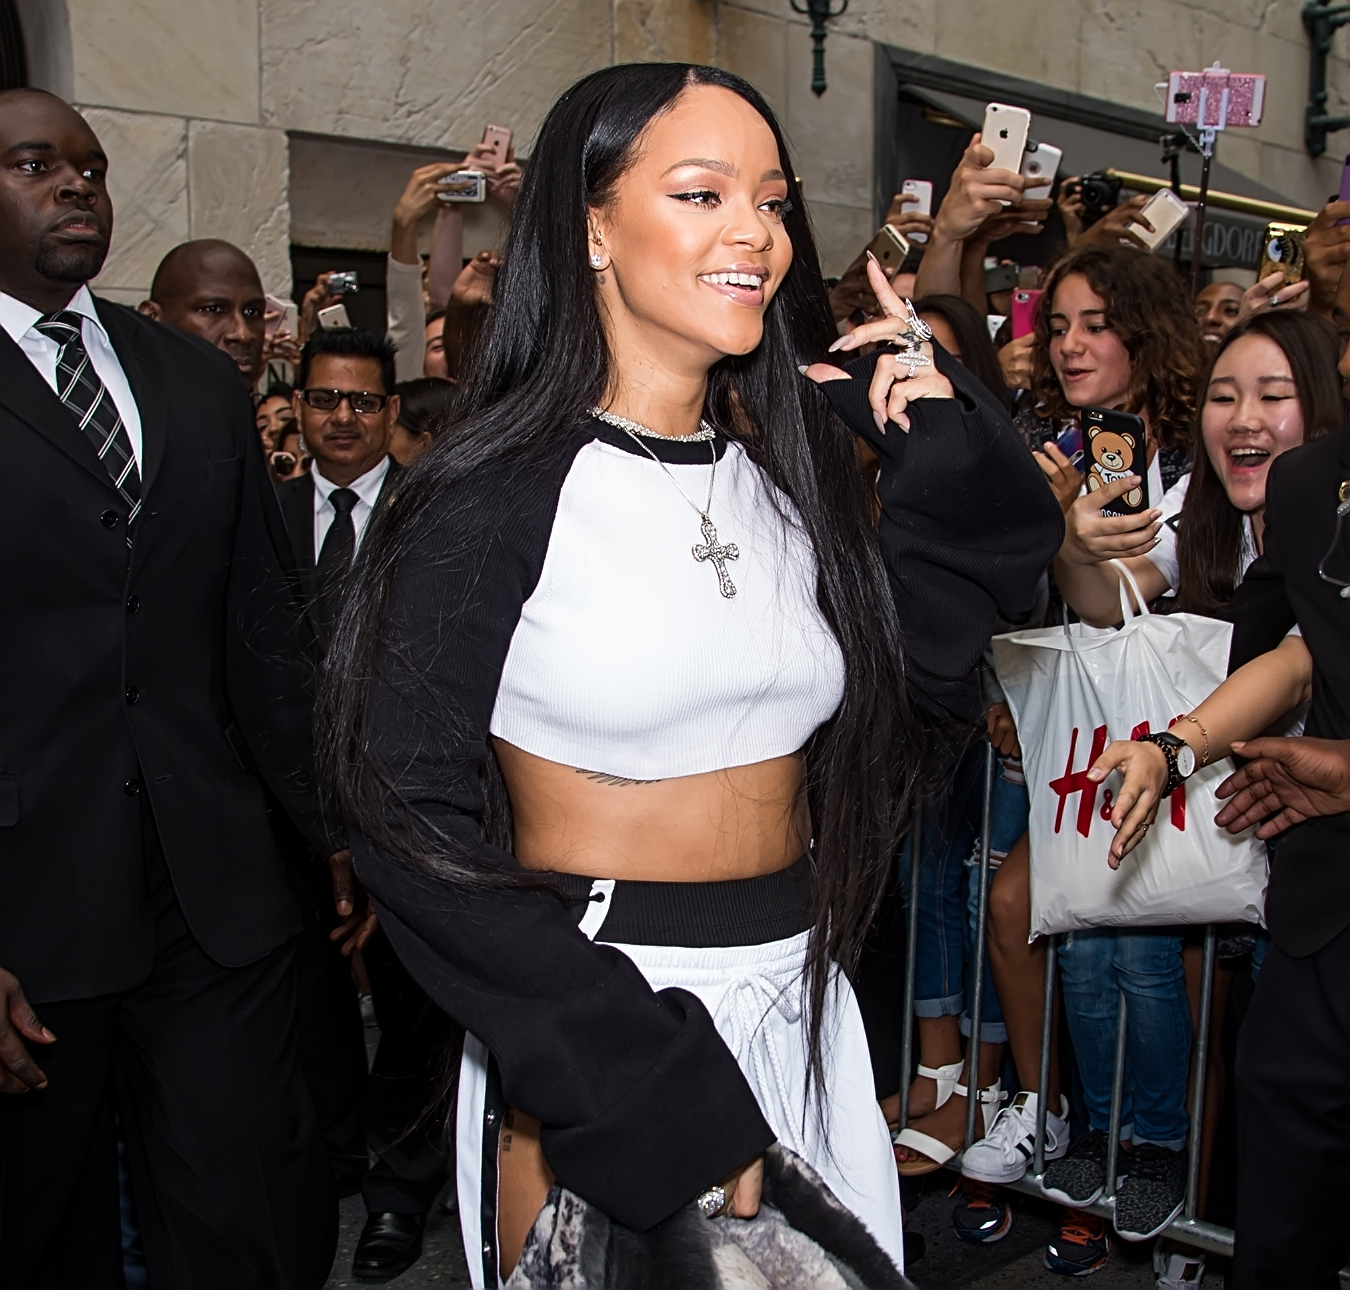 Rihanna arrives at the launch of her collection FENTY PUMA by Rihanna with Bergdorf Goodman in New York City